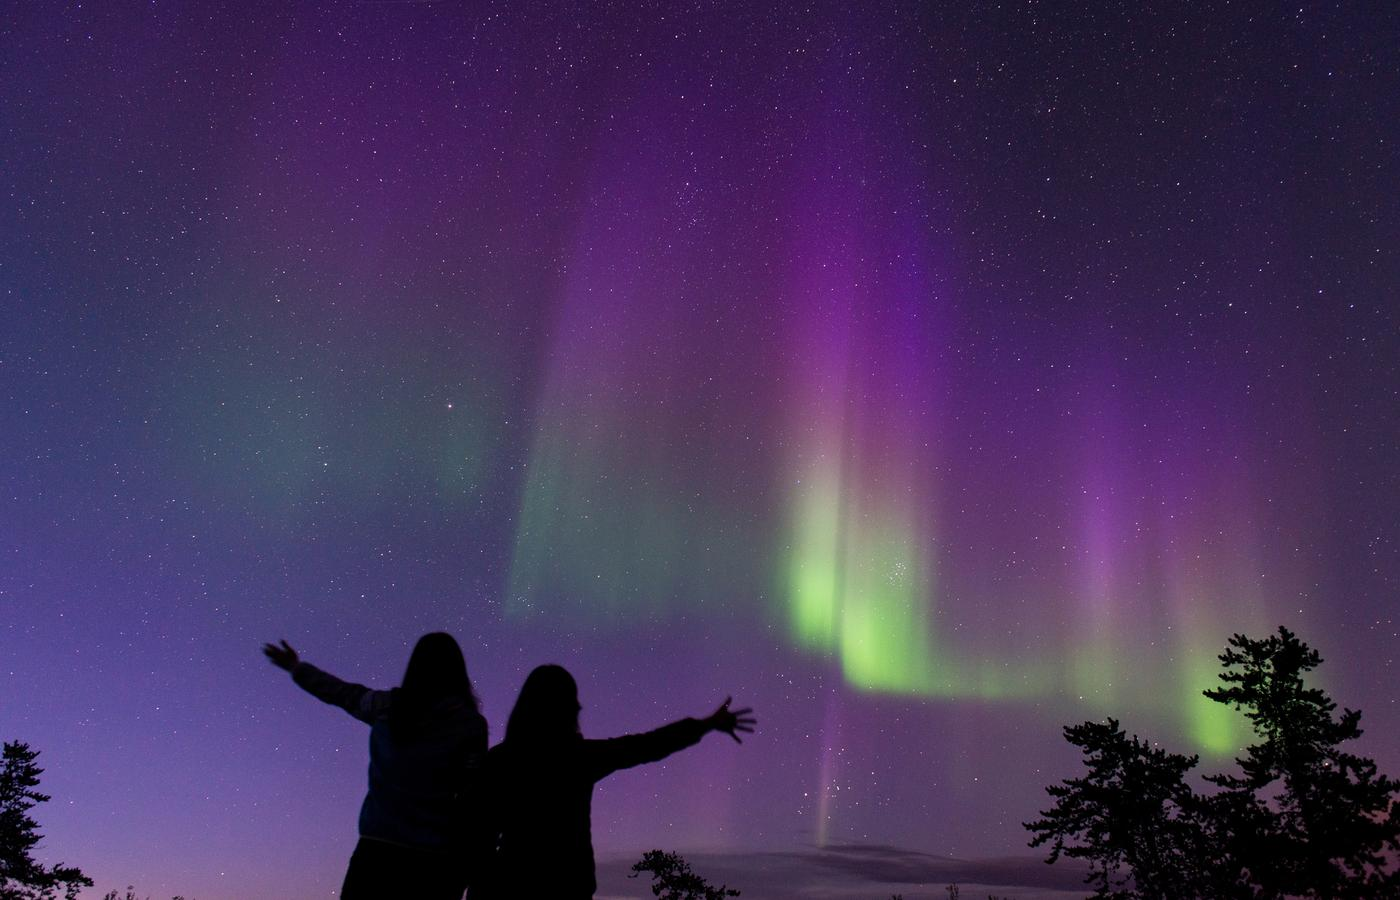 two people dance in excitement at seeing the purple northern lights glow